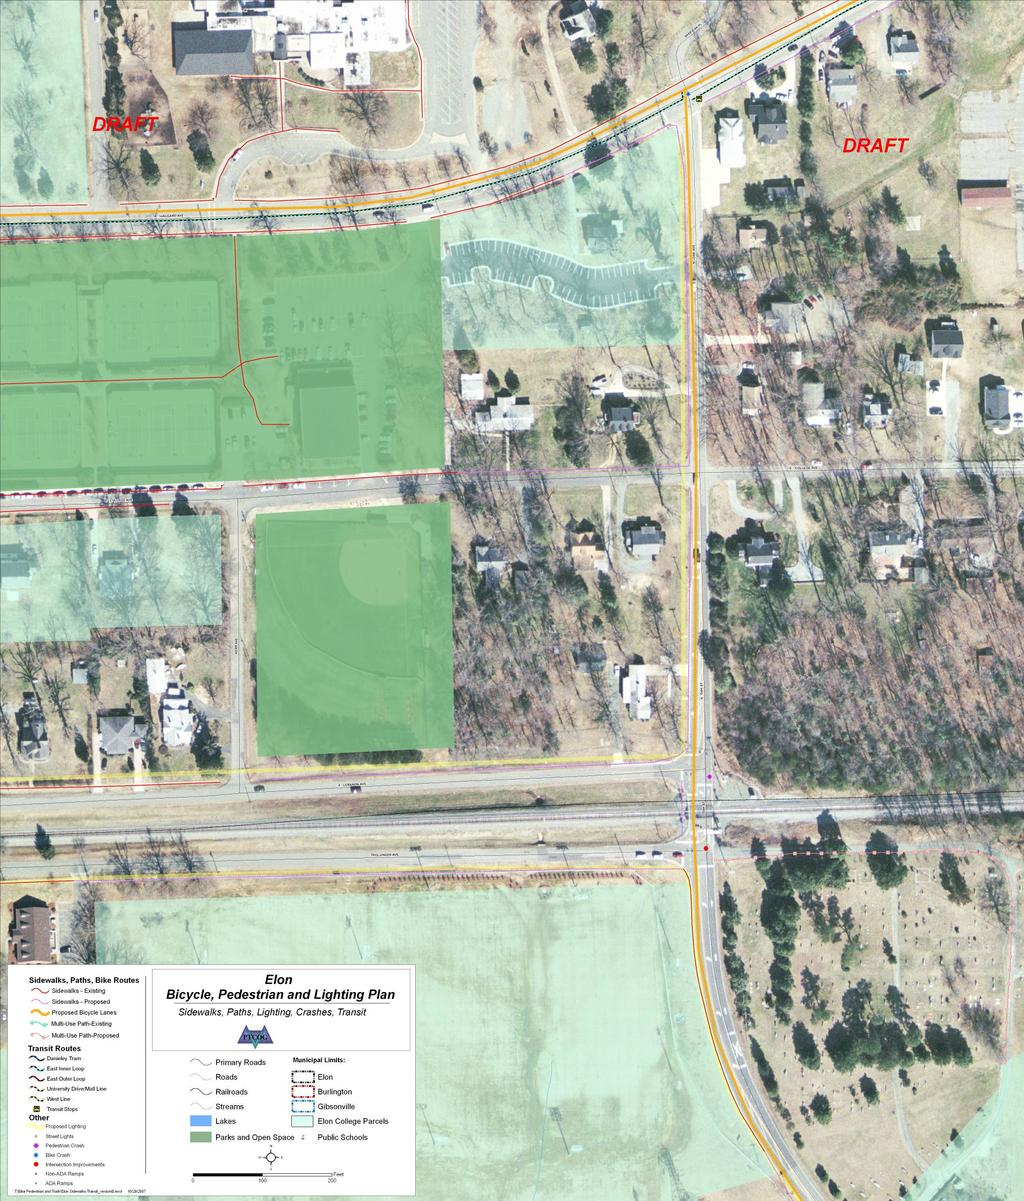 The intersection of Oak Street and the North Carolina Railroad generates some pedestrian traffic and is proposed for intersection improvement.